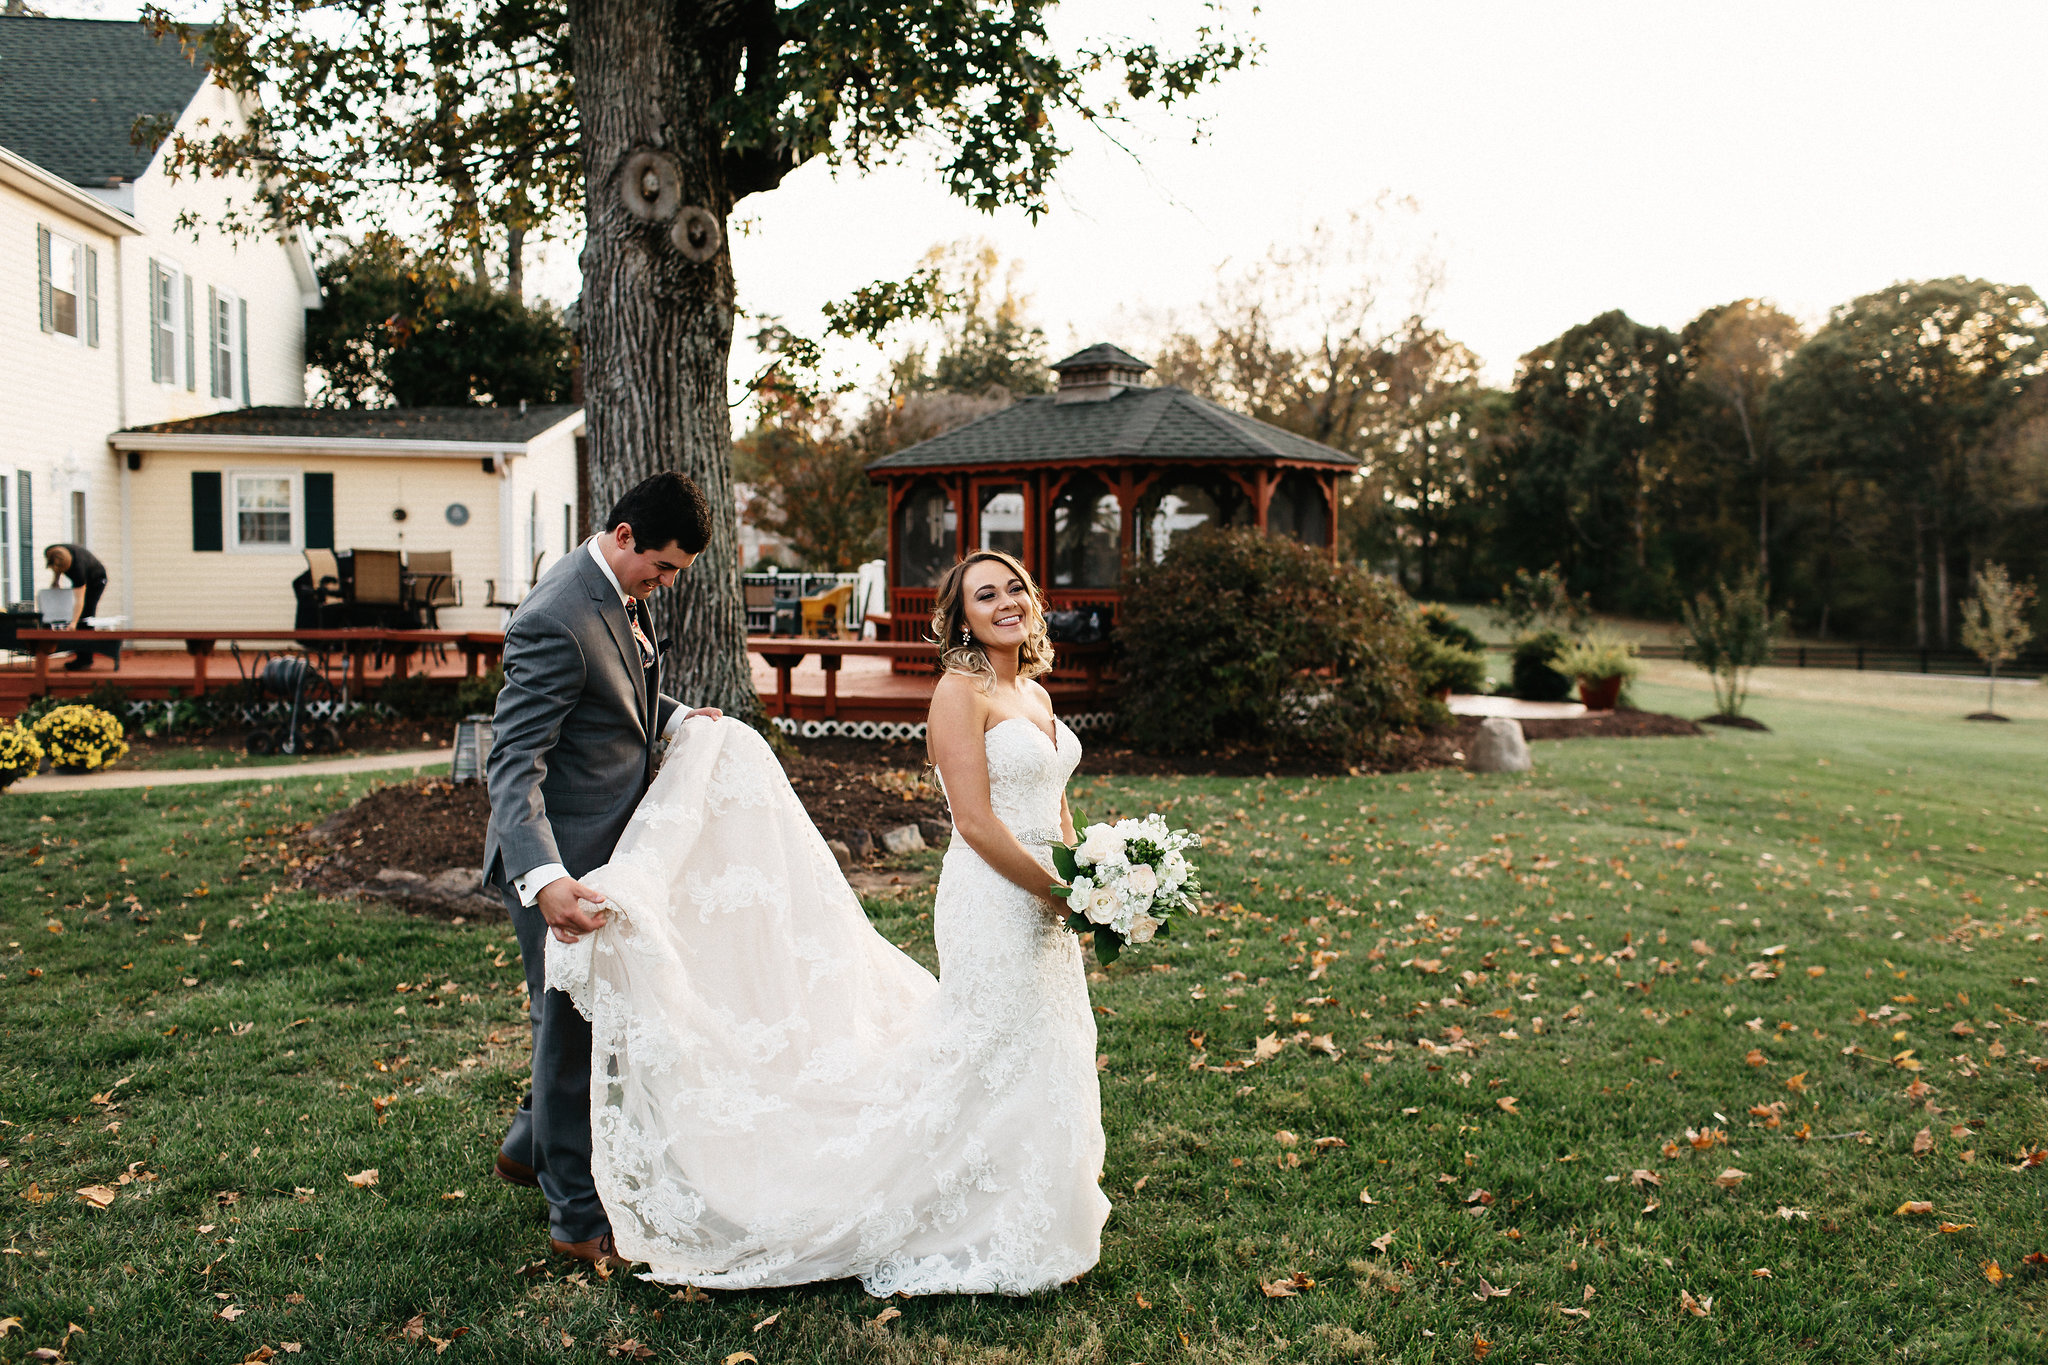 Ashley&NathanMarried2017-11-10at19.26.55PM31.jpg